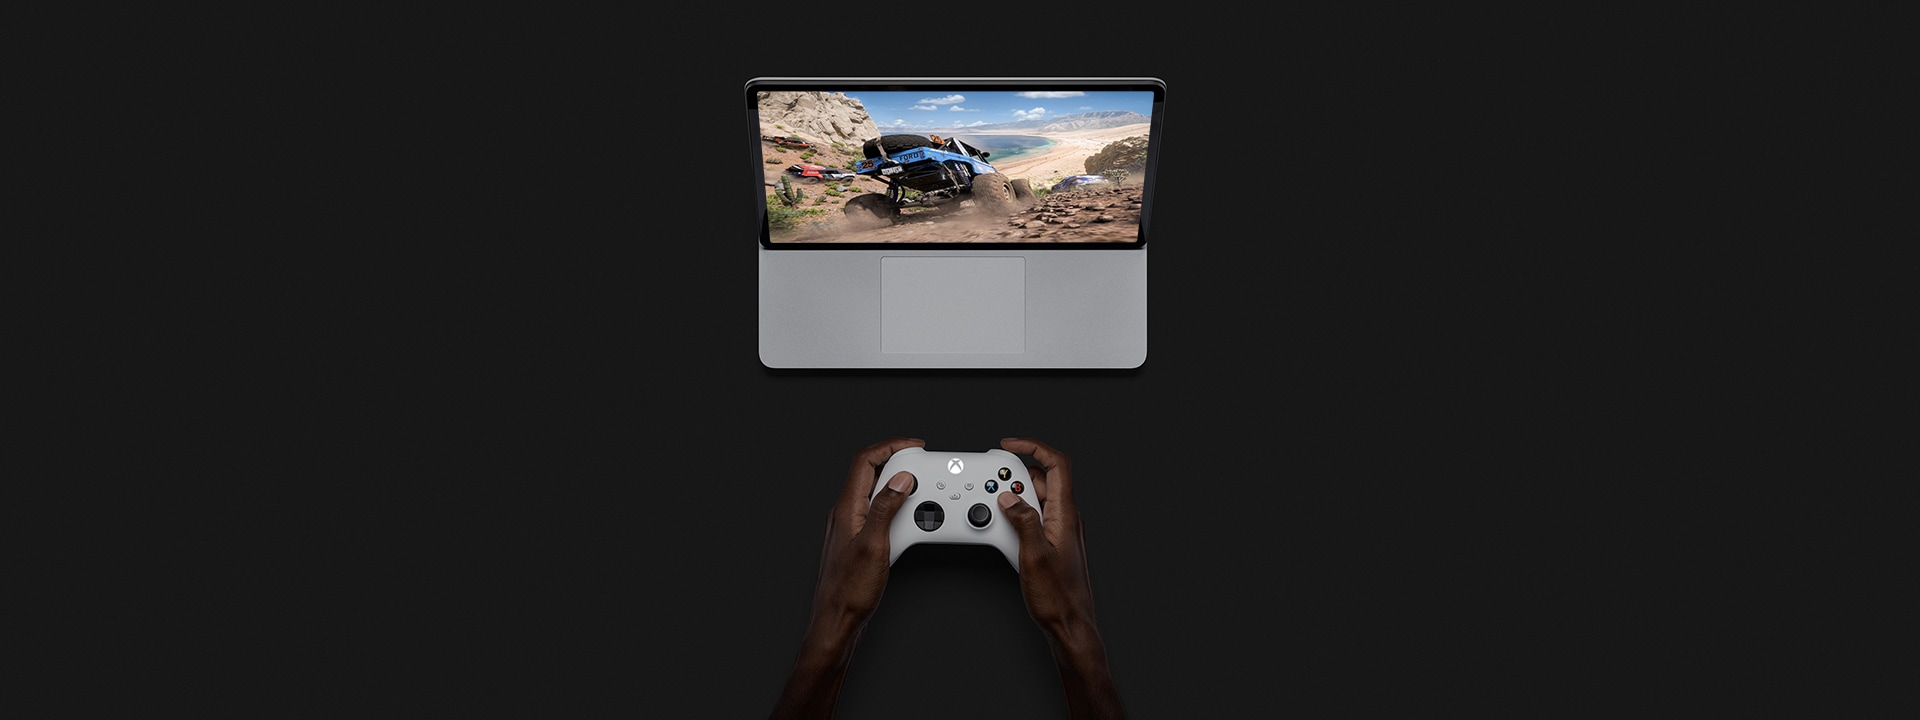 Surface Laptop Studio in stage mode being used to game.